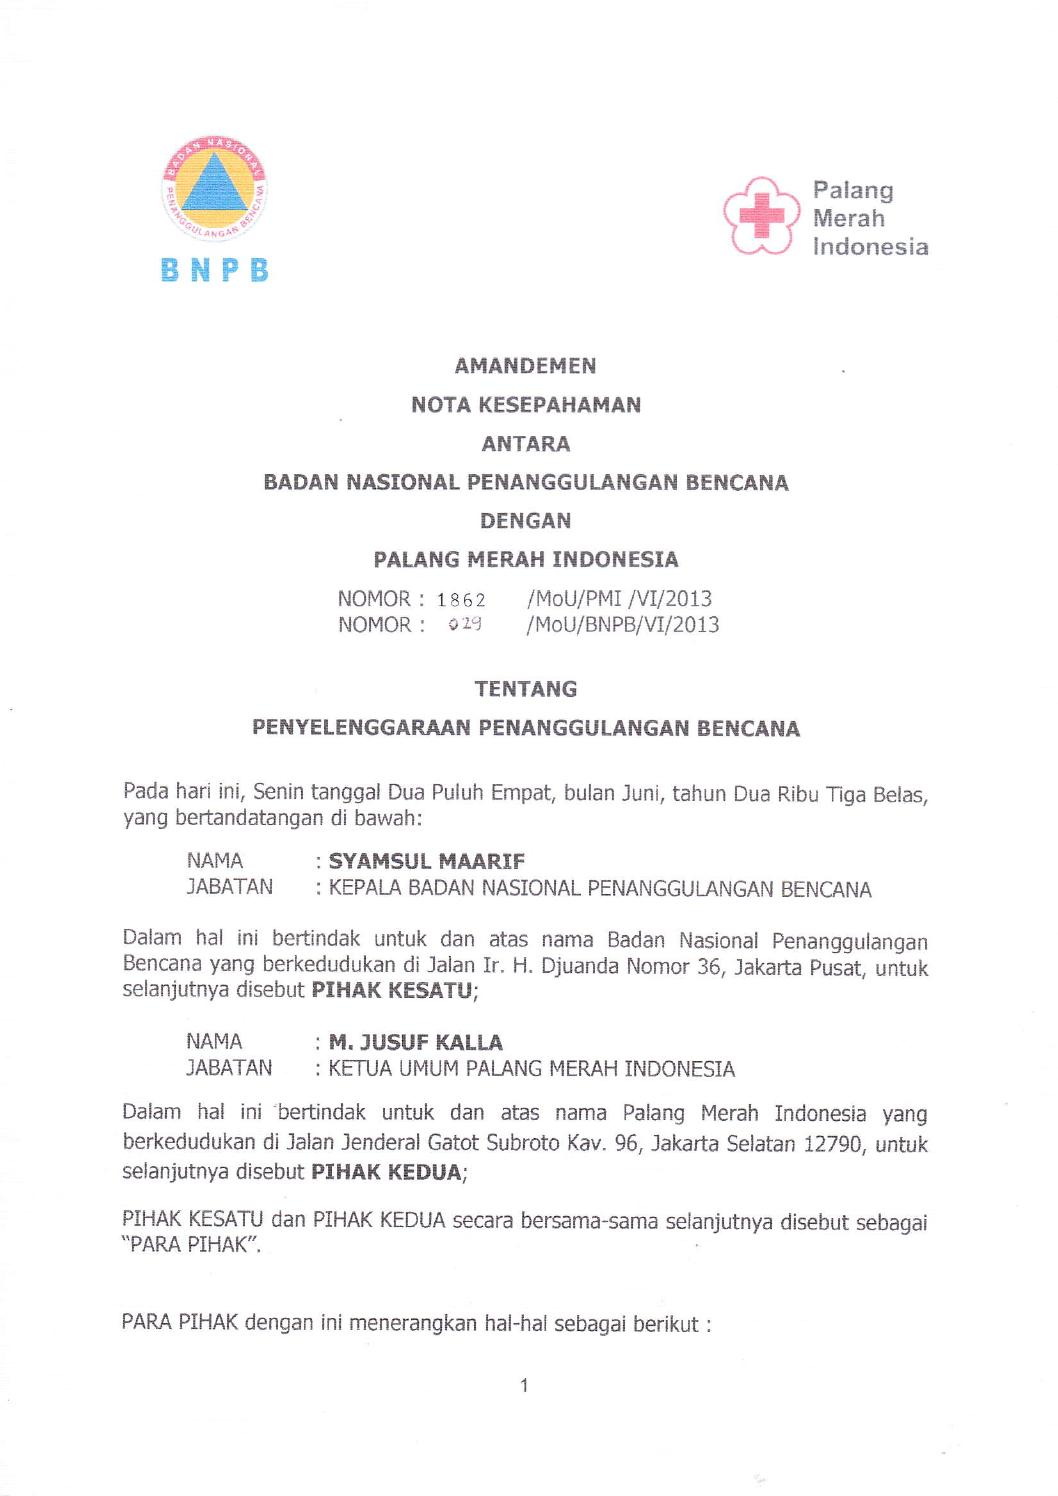 Mou Pmi Bnpb By Palang Merah Indonesia Issuu